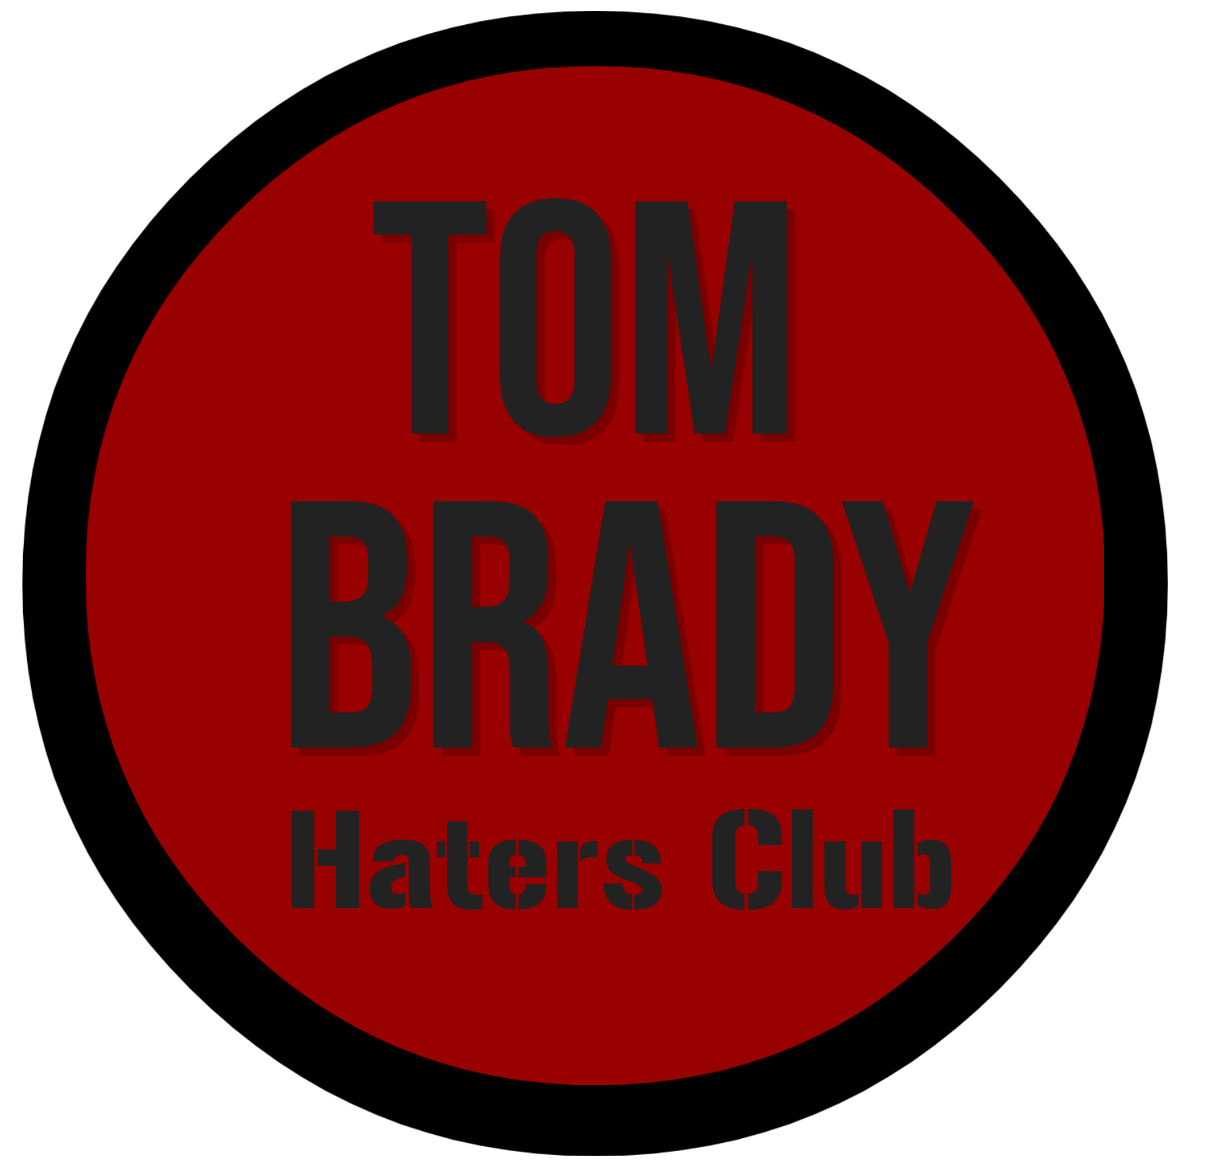 The Tom Brady Haters Song